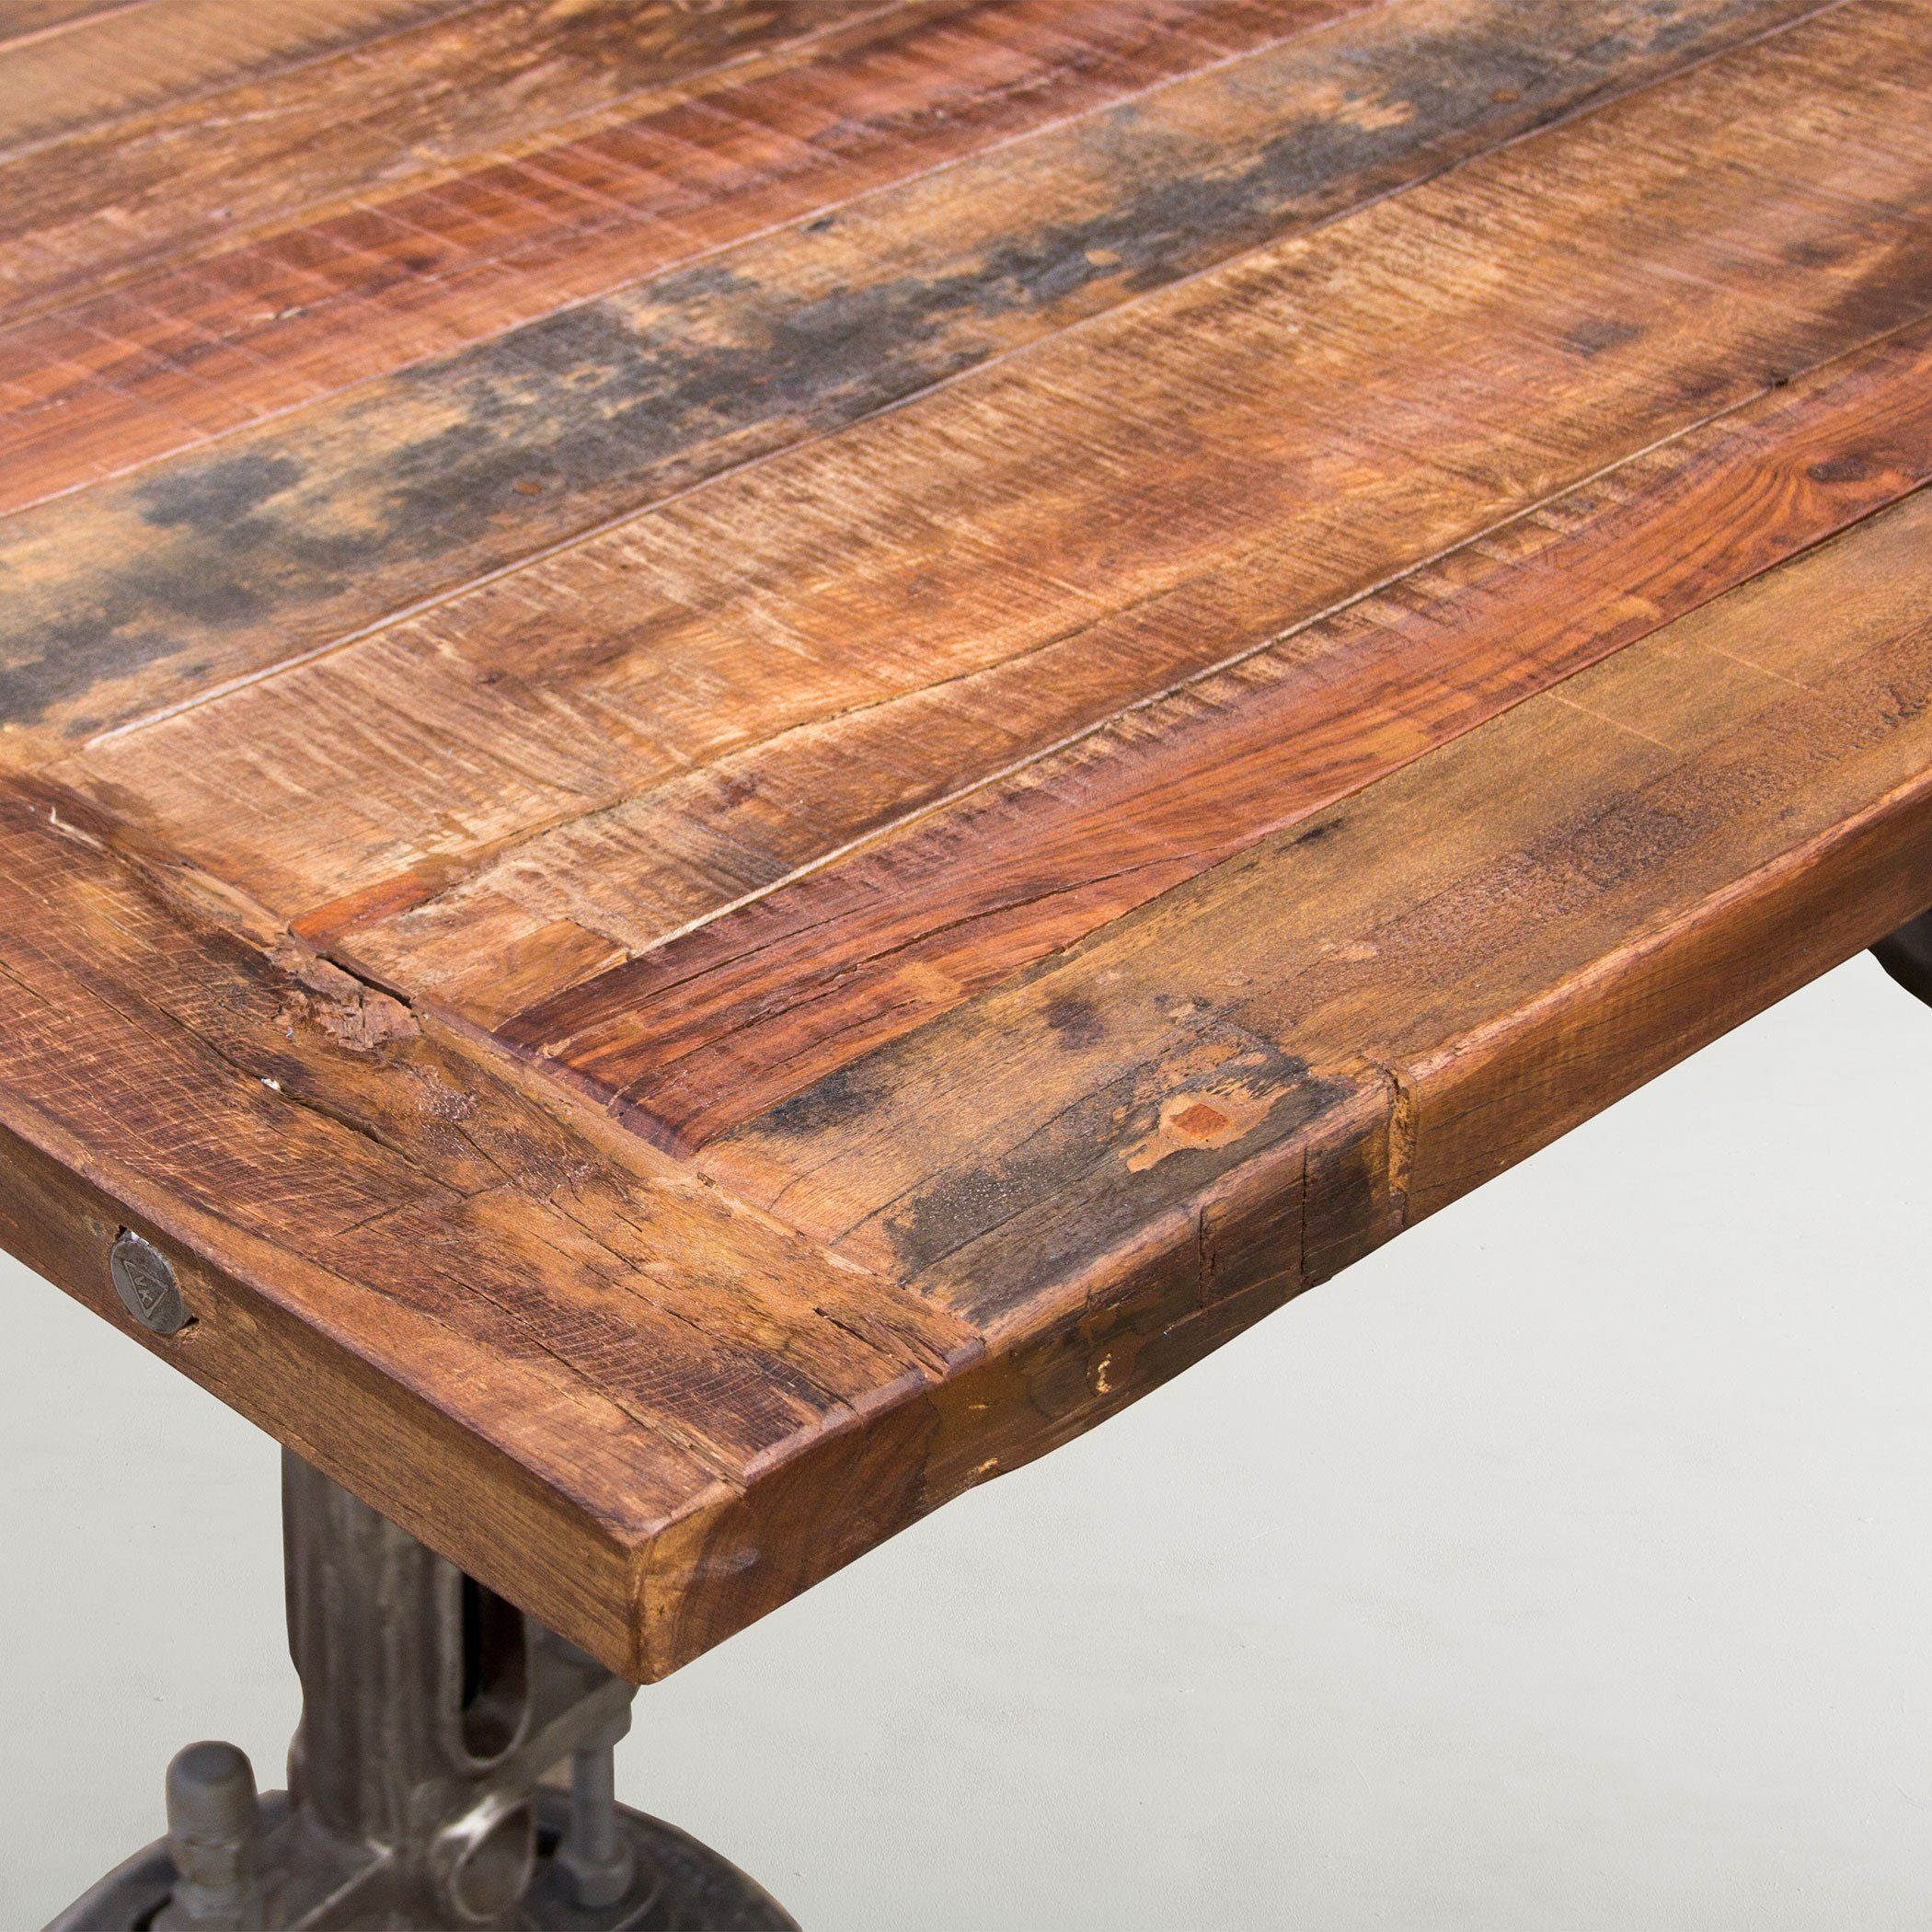 Reclaimed Teak Wood Furniture Pros And Cons To Know Before